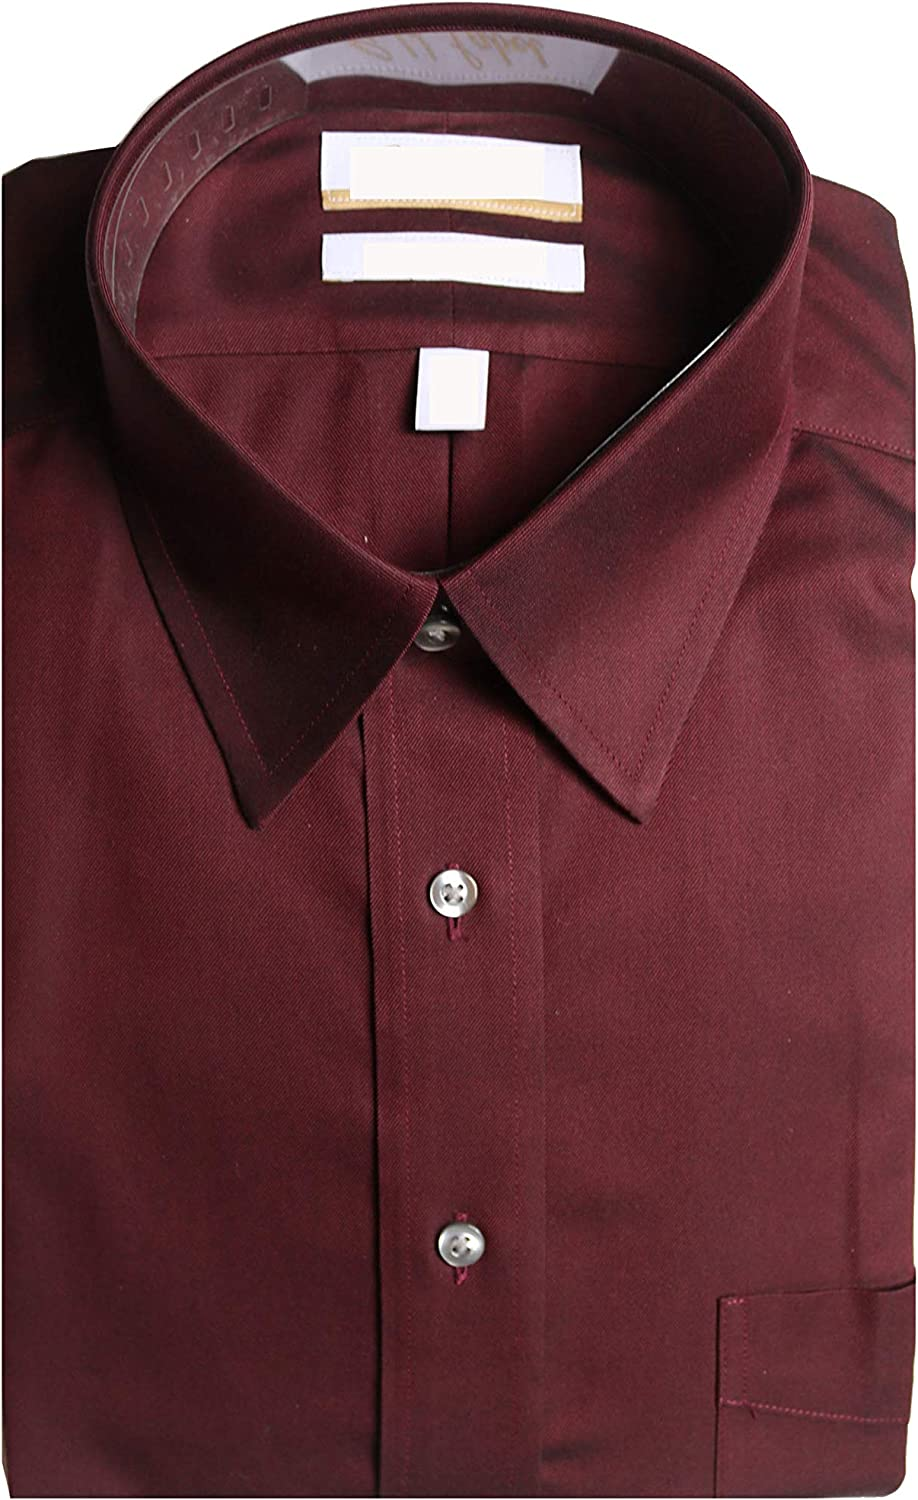 Gold Label Roundtree & Yorke Non-Iron Regular Point Collar Solid Dress Shirt G16A0094 Burgundy